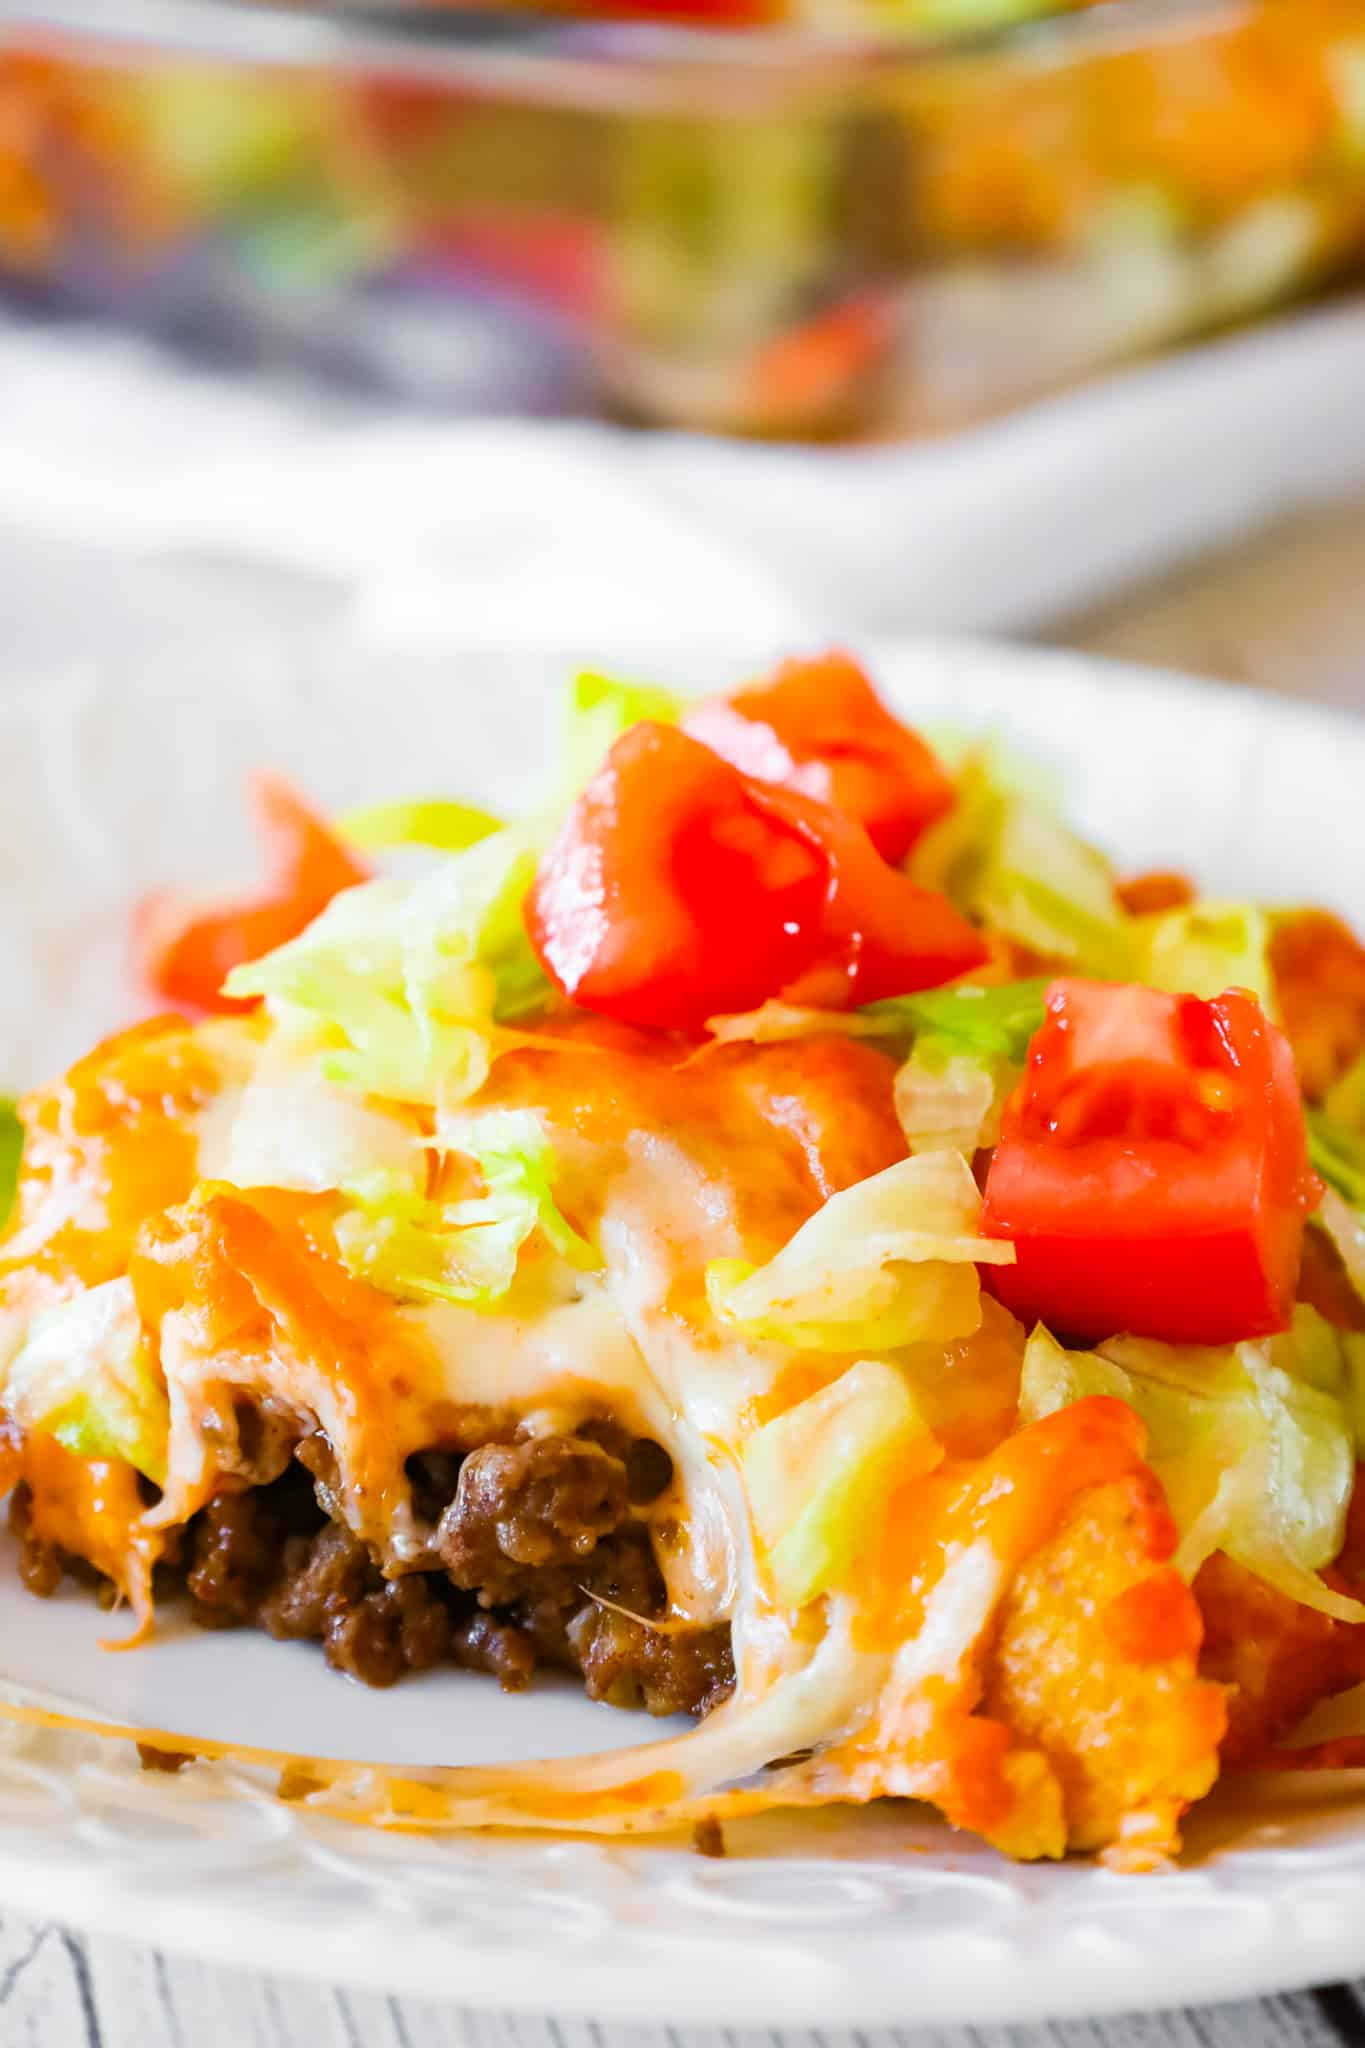 Walking Taco Casserole is an easy ground beef dinner recipe loaded with diced onions, Fritos corn chips, shredded nacho cheese blend, lettuce and diced tomatoes.